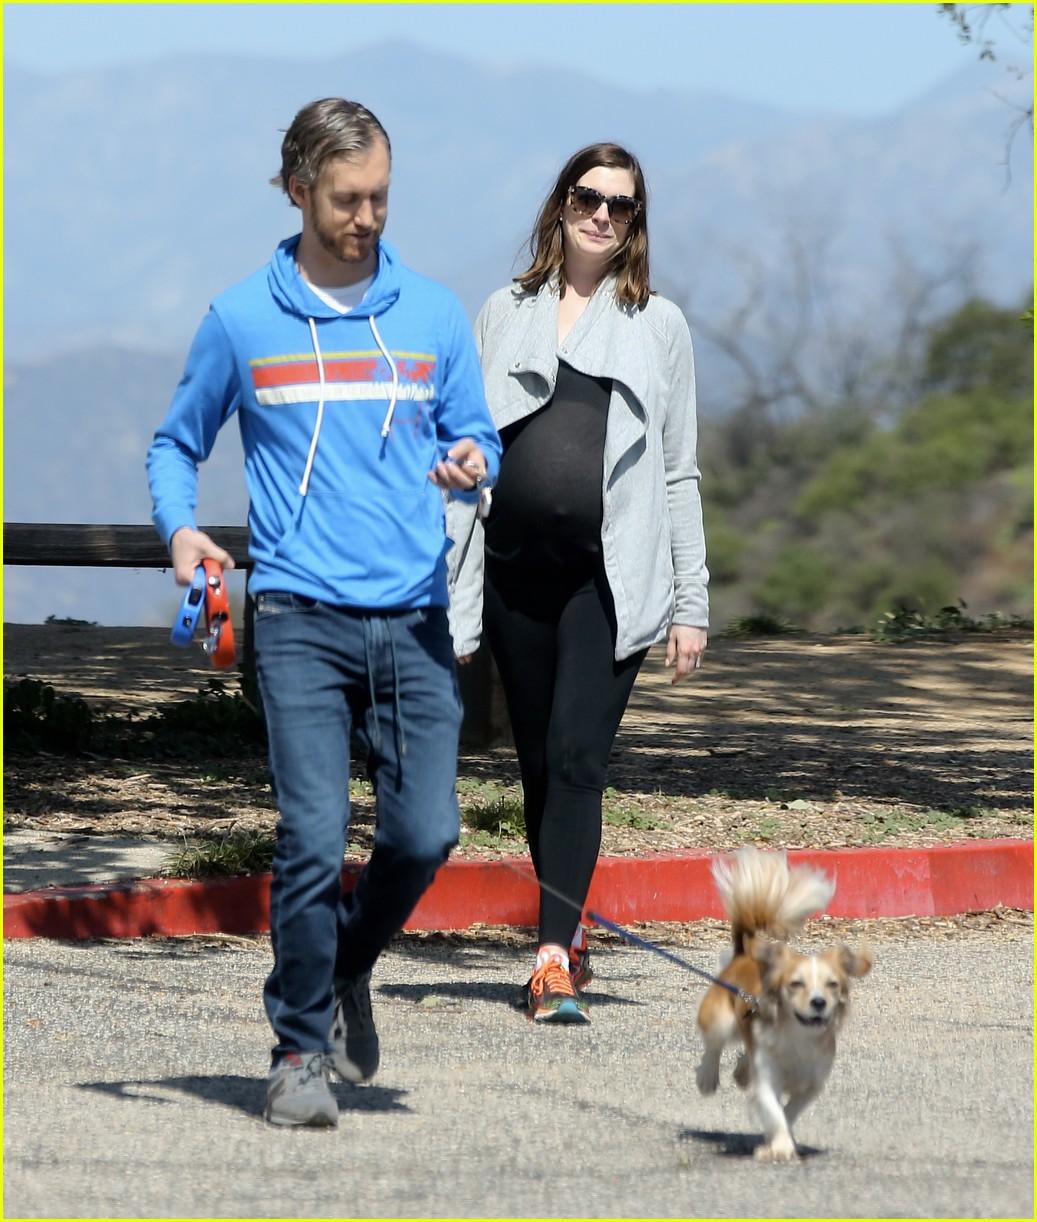 Anne Hathaway And Husband Adam Shulman Hold Hands As They: Anne Hathaway Hikes With Husband, Dogs & Growing Baby Bump